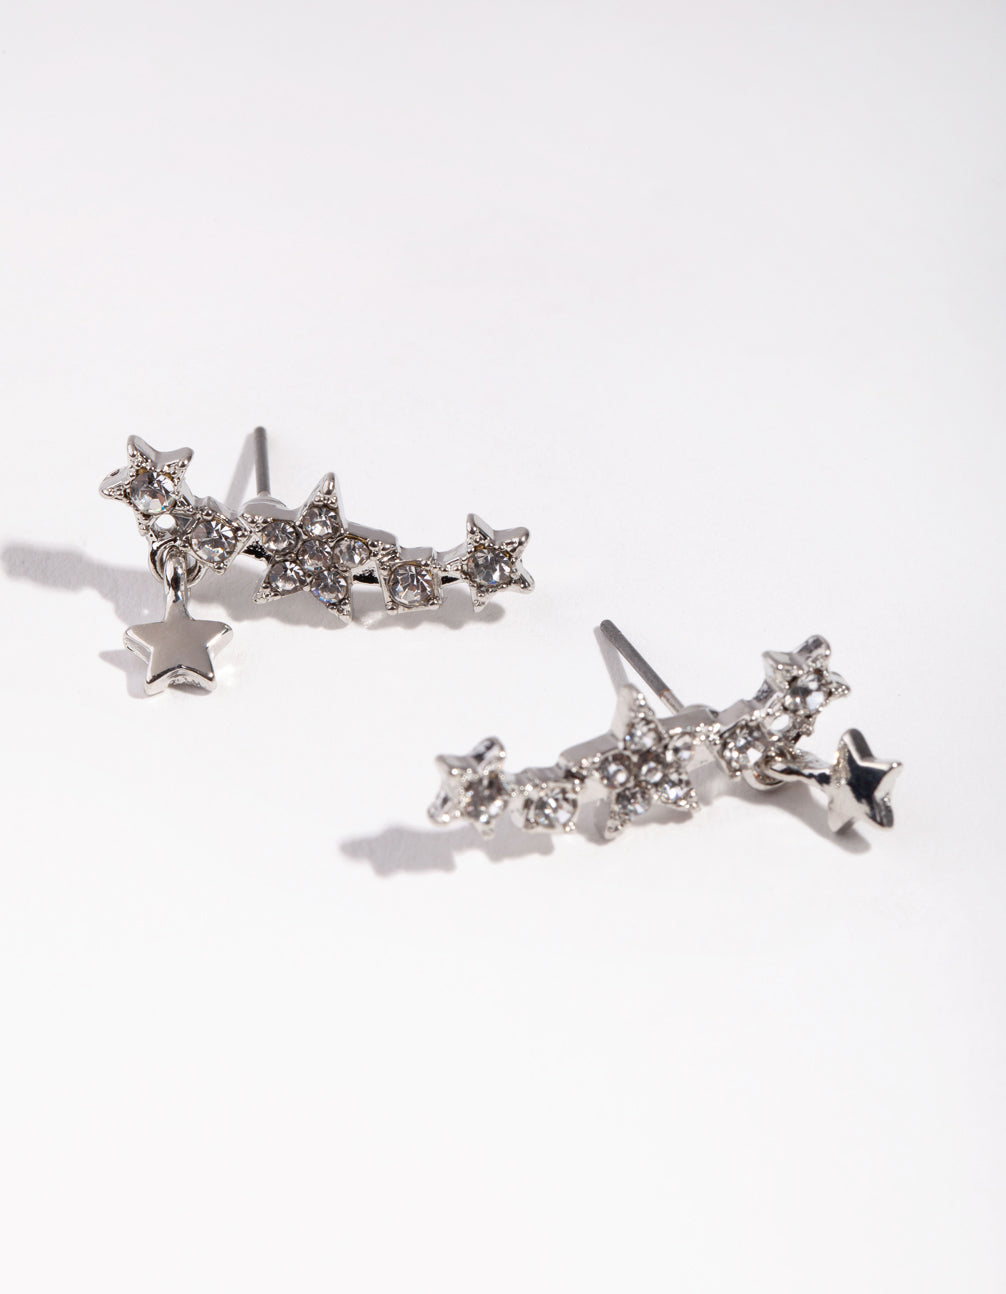 Rhodium Shooting Star Ear Cuff Earrings